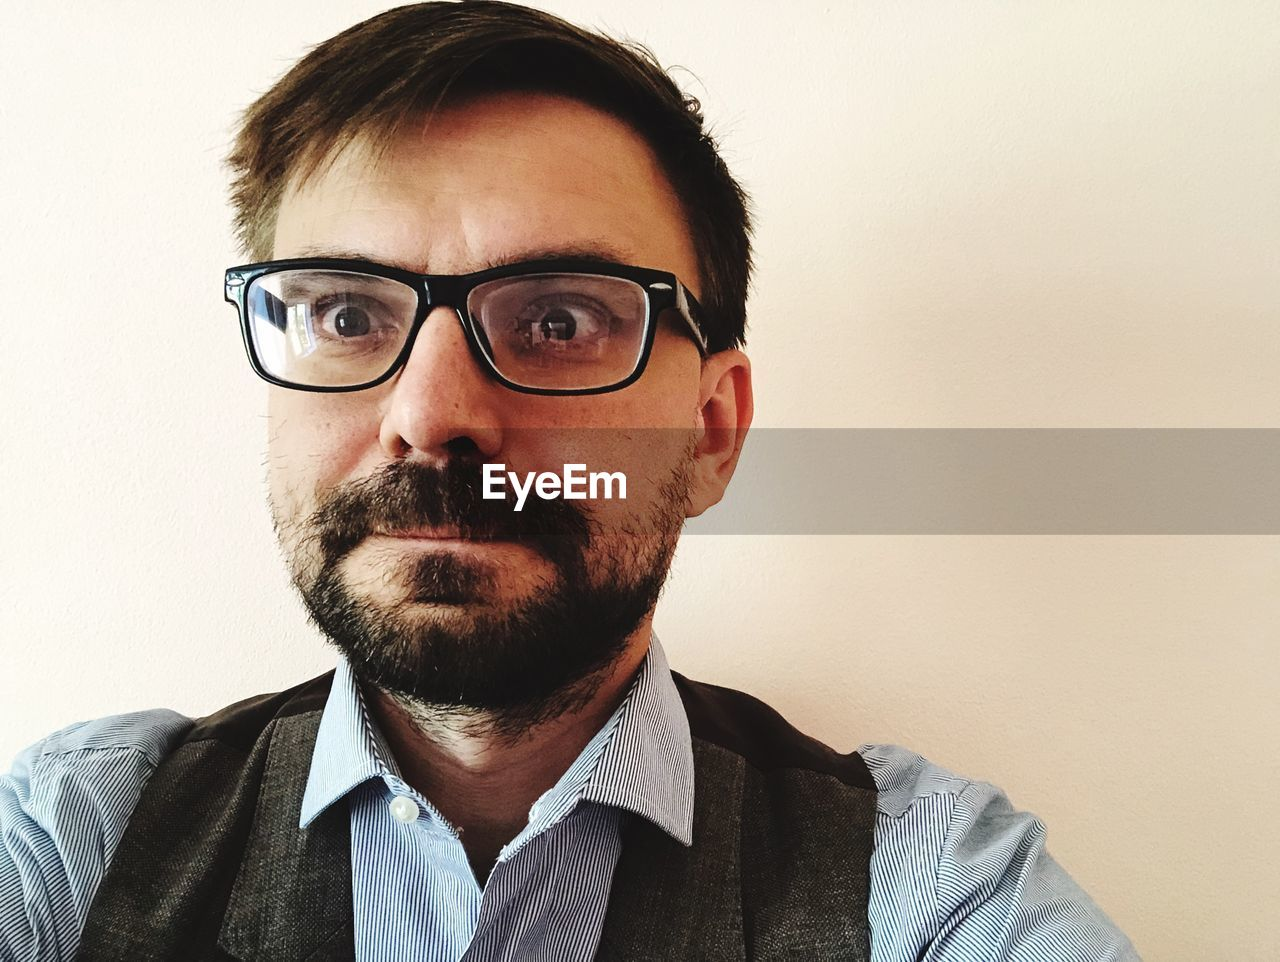 glasses, headshot, front view, beard, one person, portrait, facial hair, eyeglasses, indoors, men, young men, wall - building feature, males, real people, looking at camera, casual clothing, lifestyles, close-up, human face, hairstyle